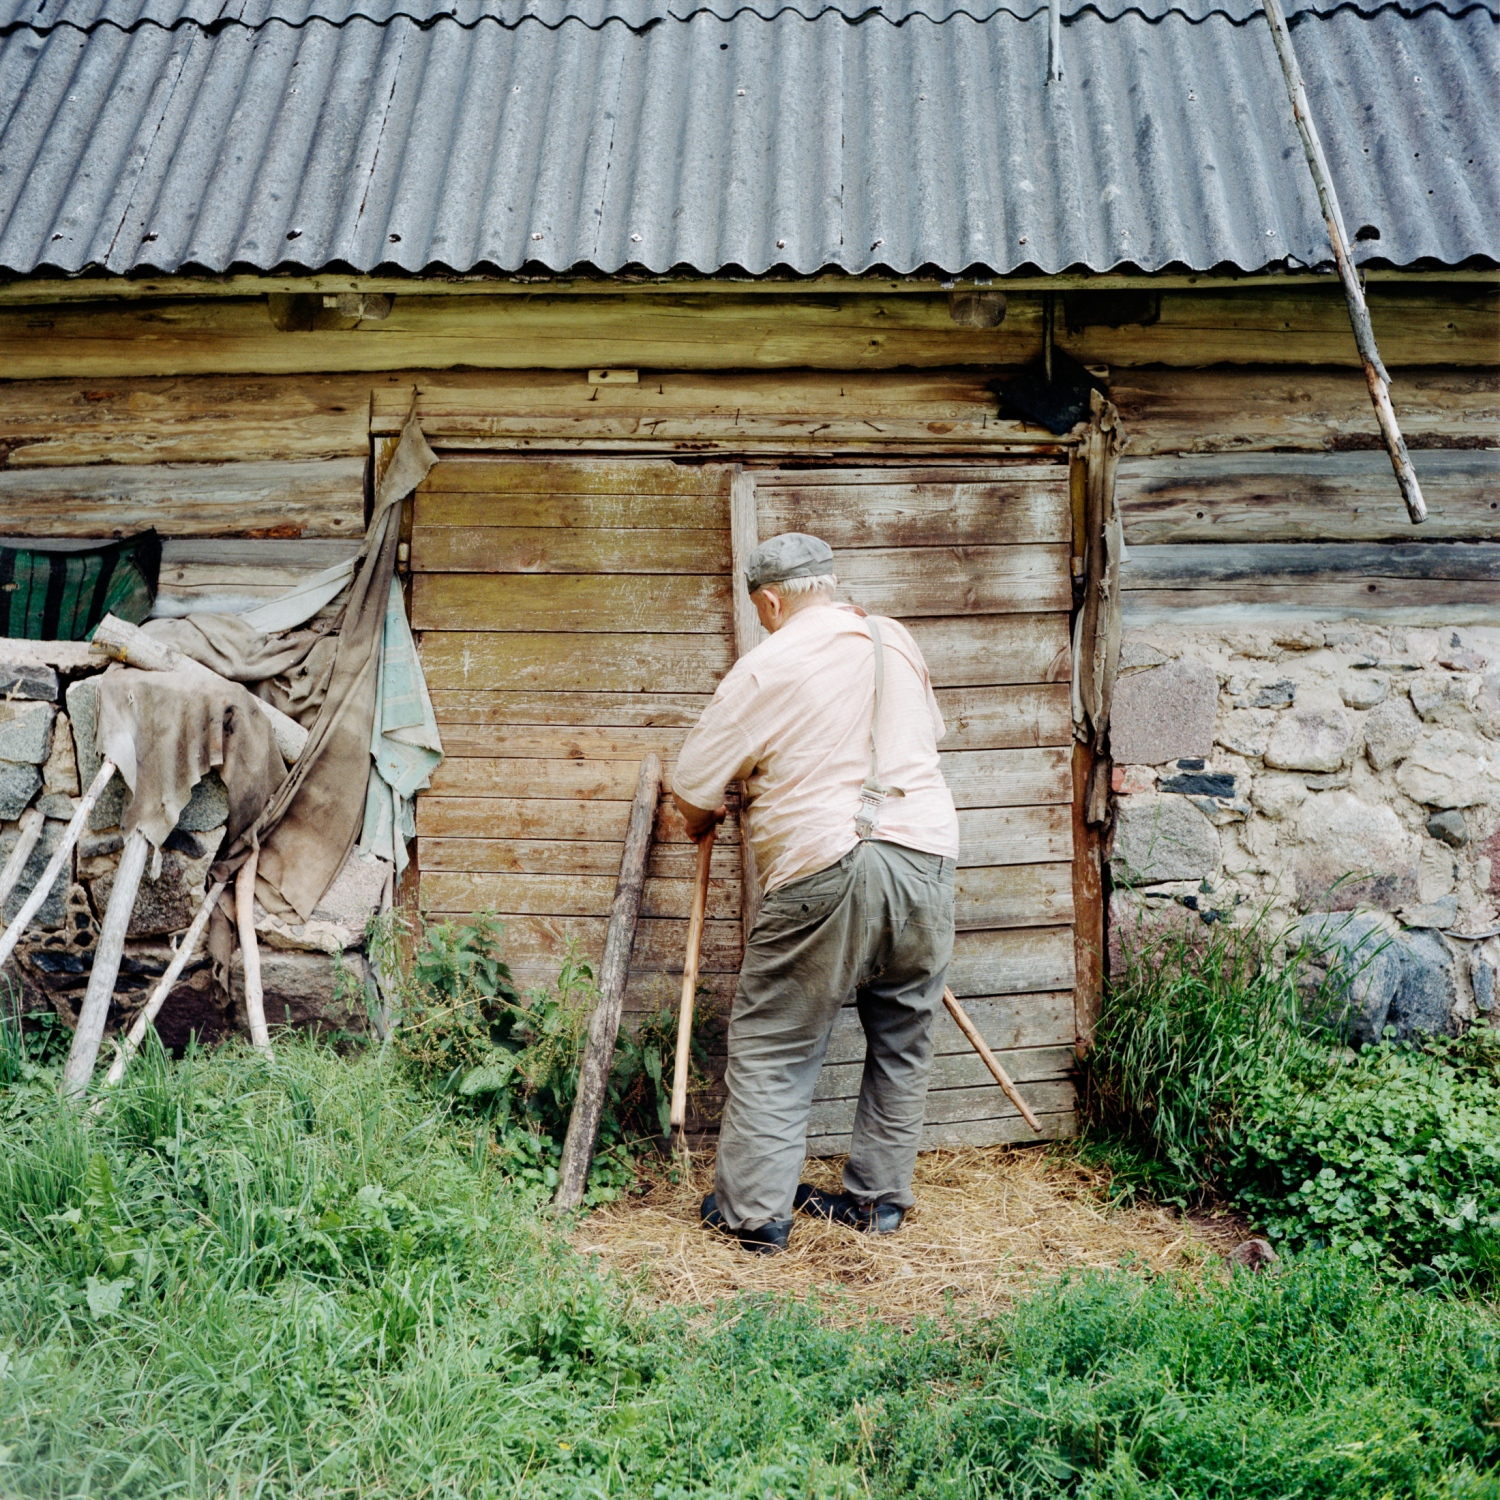 Vinski is a small Estonian village right on the Russian-Estonian border running through the Setomaa. Today two families and an old man live in Vinski. Before 1991 the village hosted 14 families.